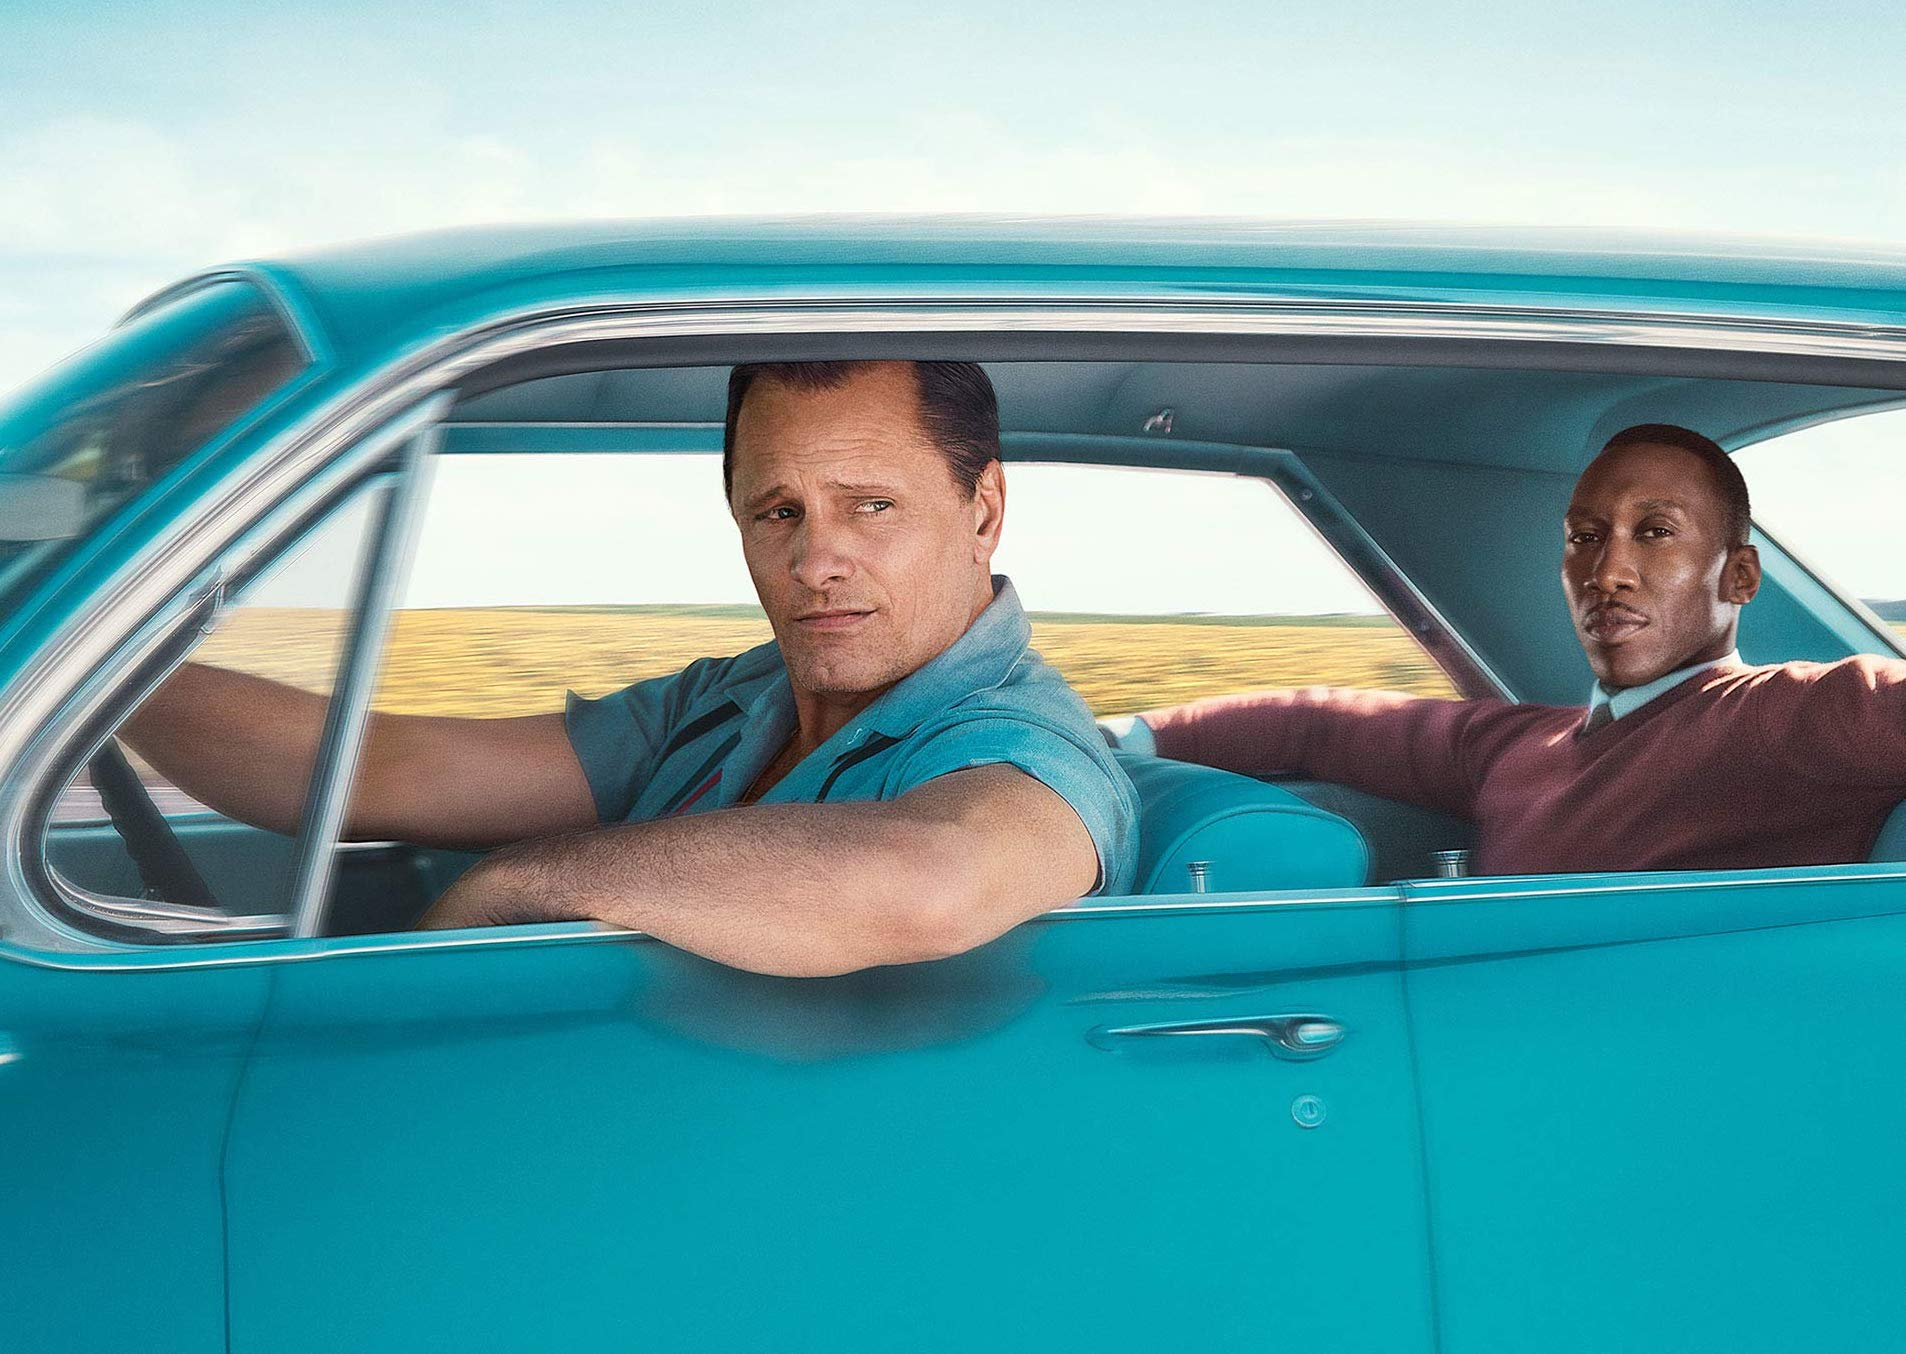 Feelin' Good: What 'Green Book' Got Wrong and 'Period' Gets Right